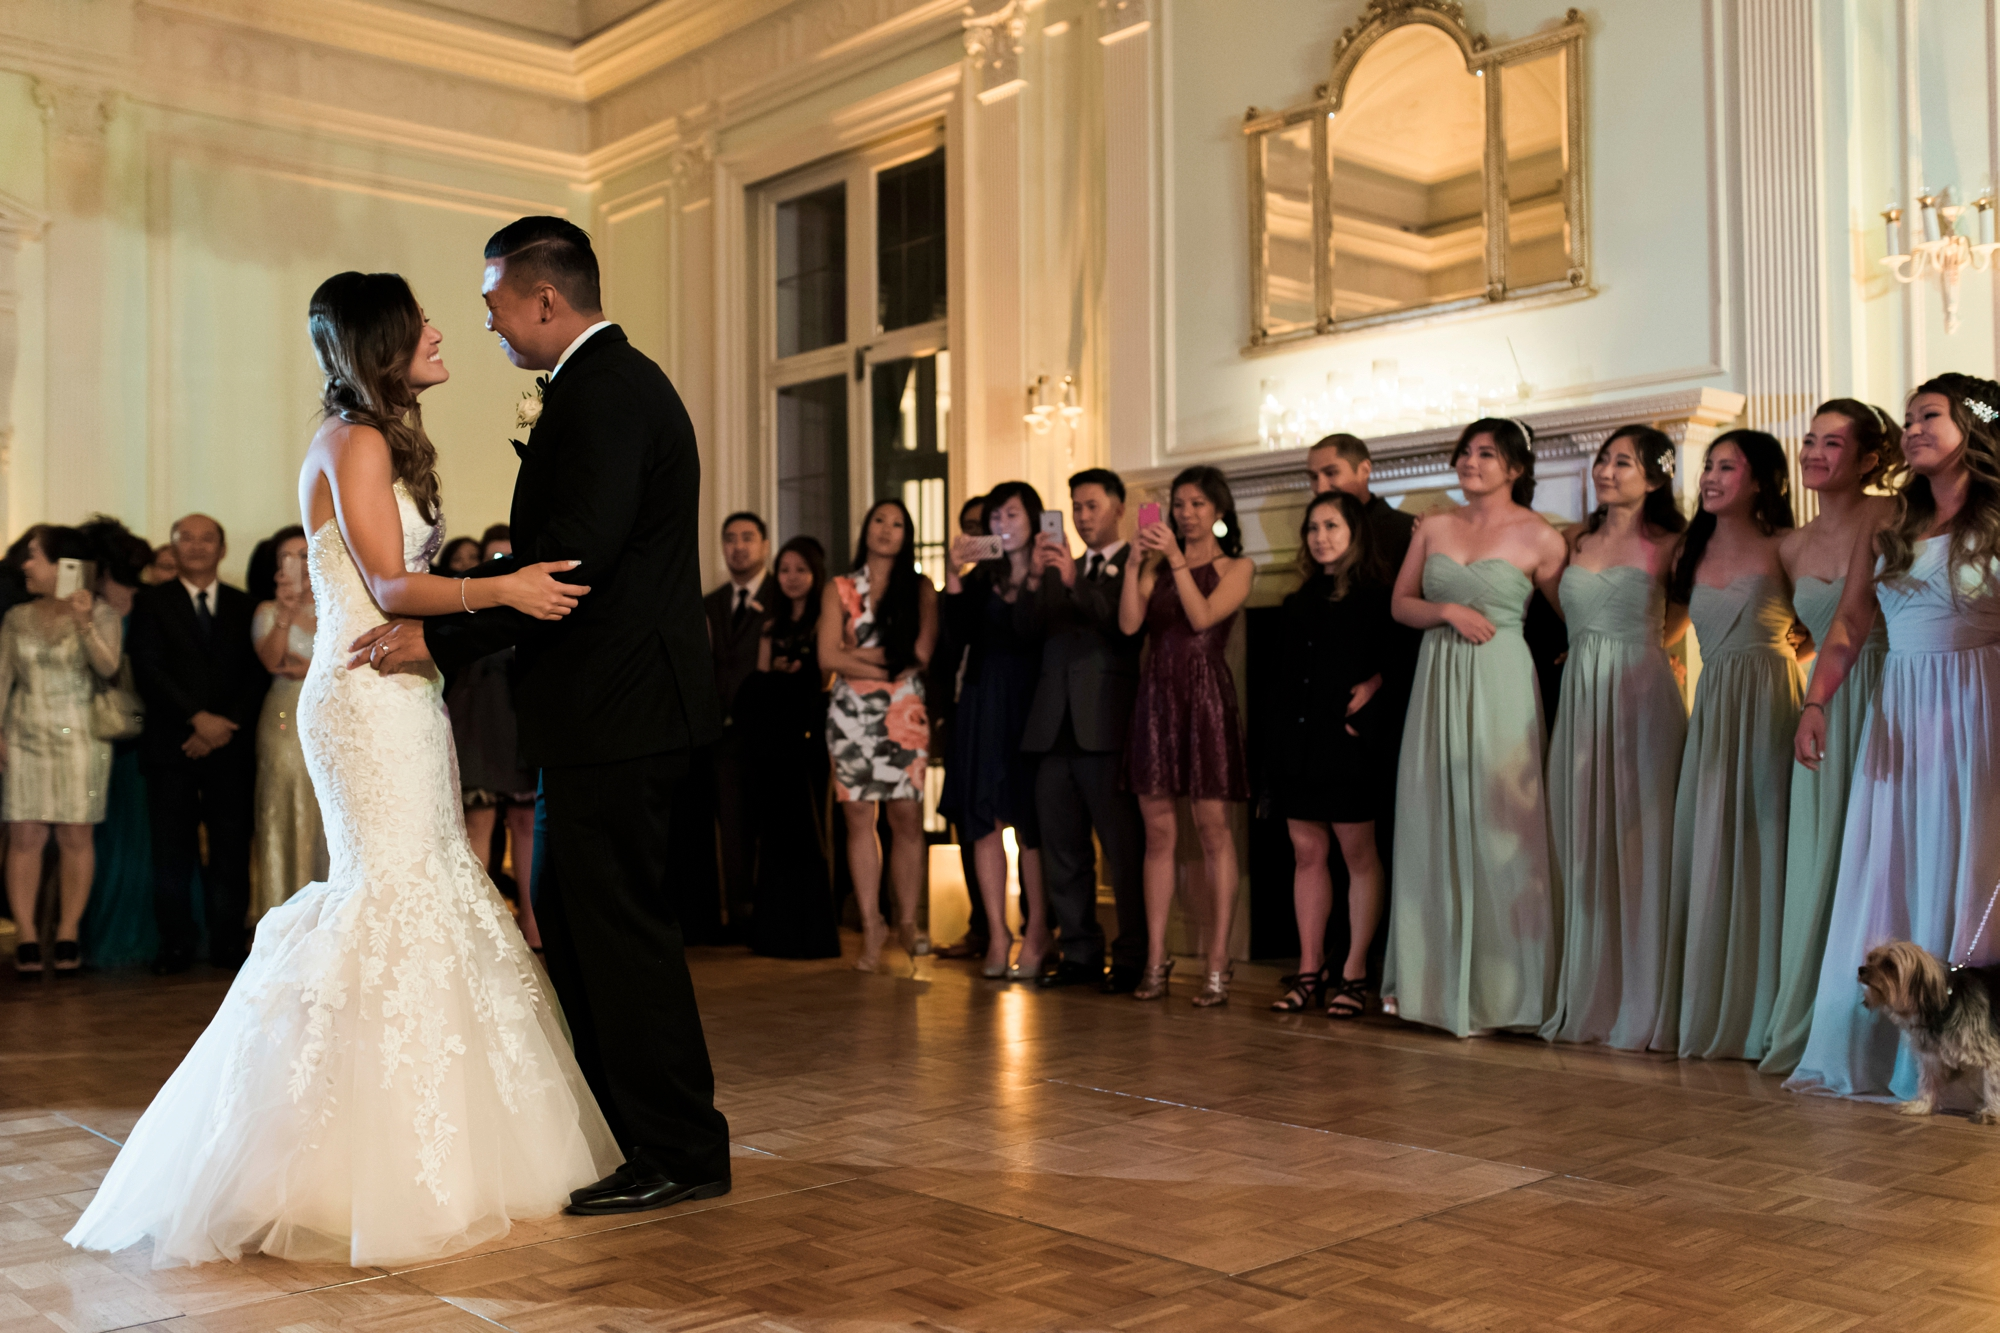 kohl-mansion-wedding-photography-and-videography-84.jpg